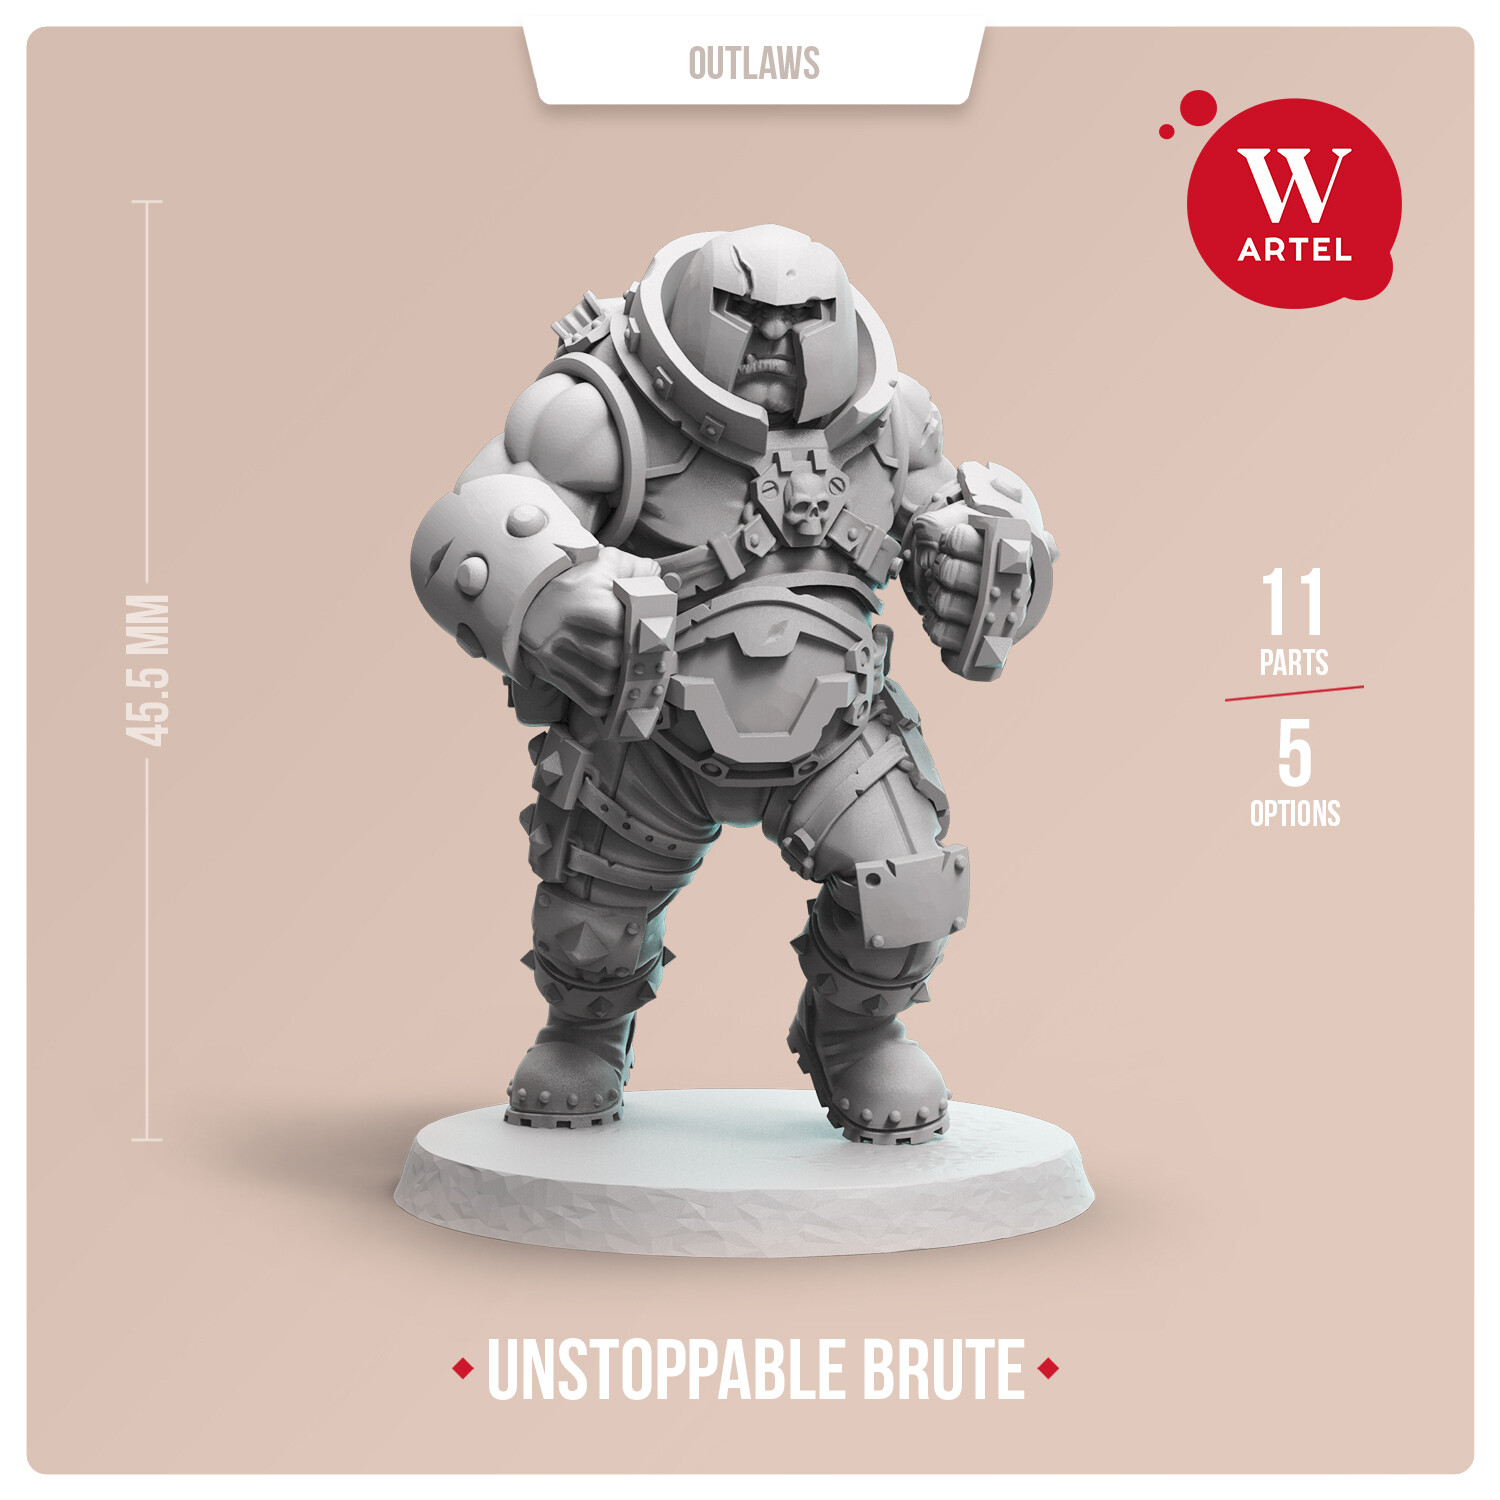 Unstoppable Brute